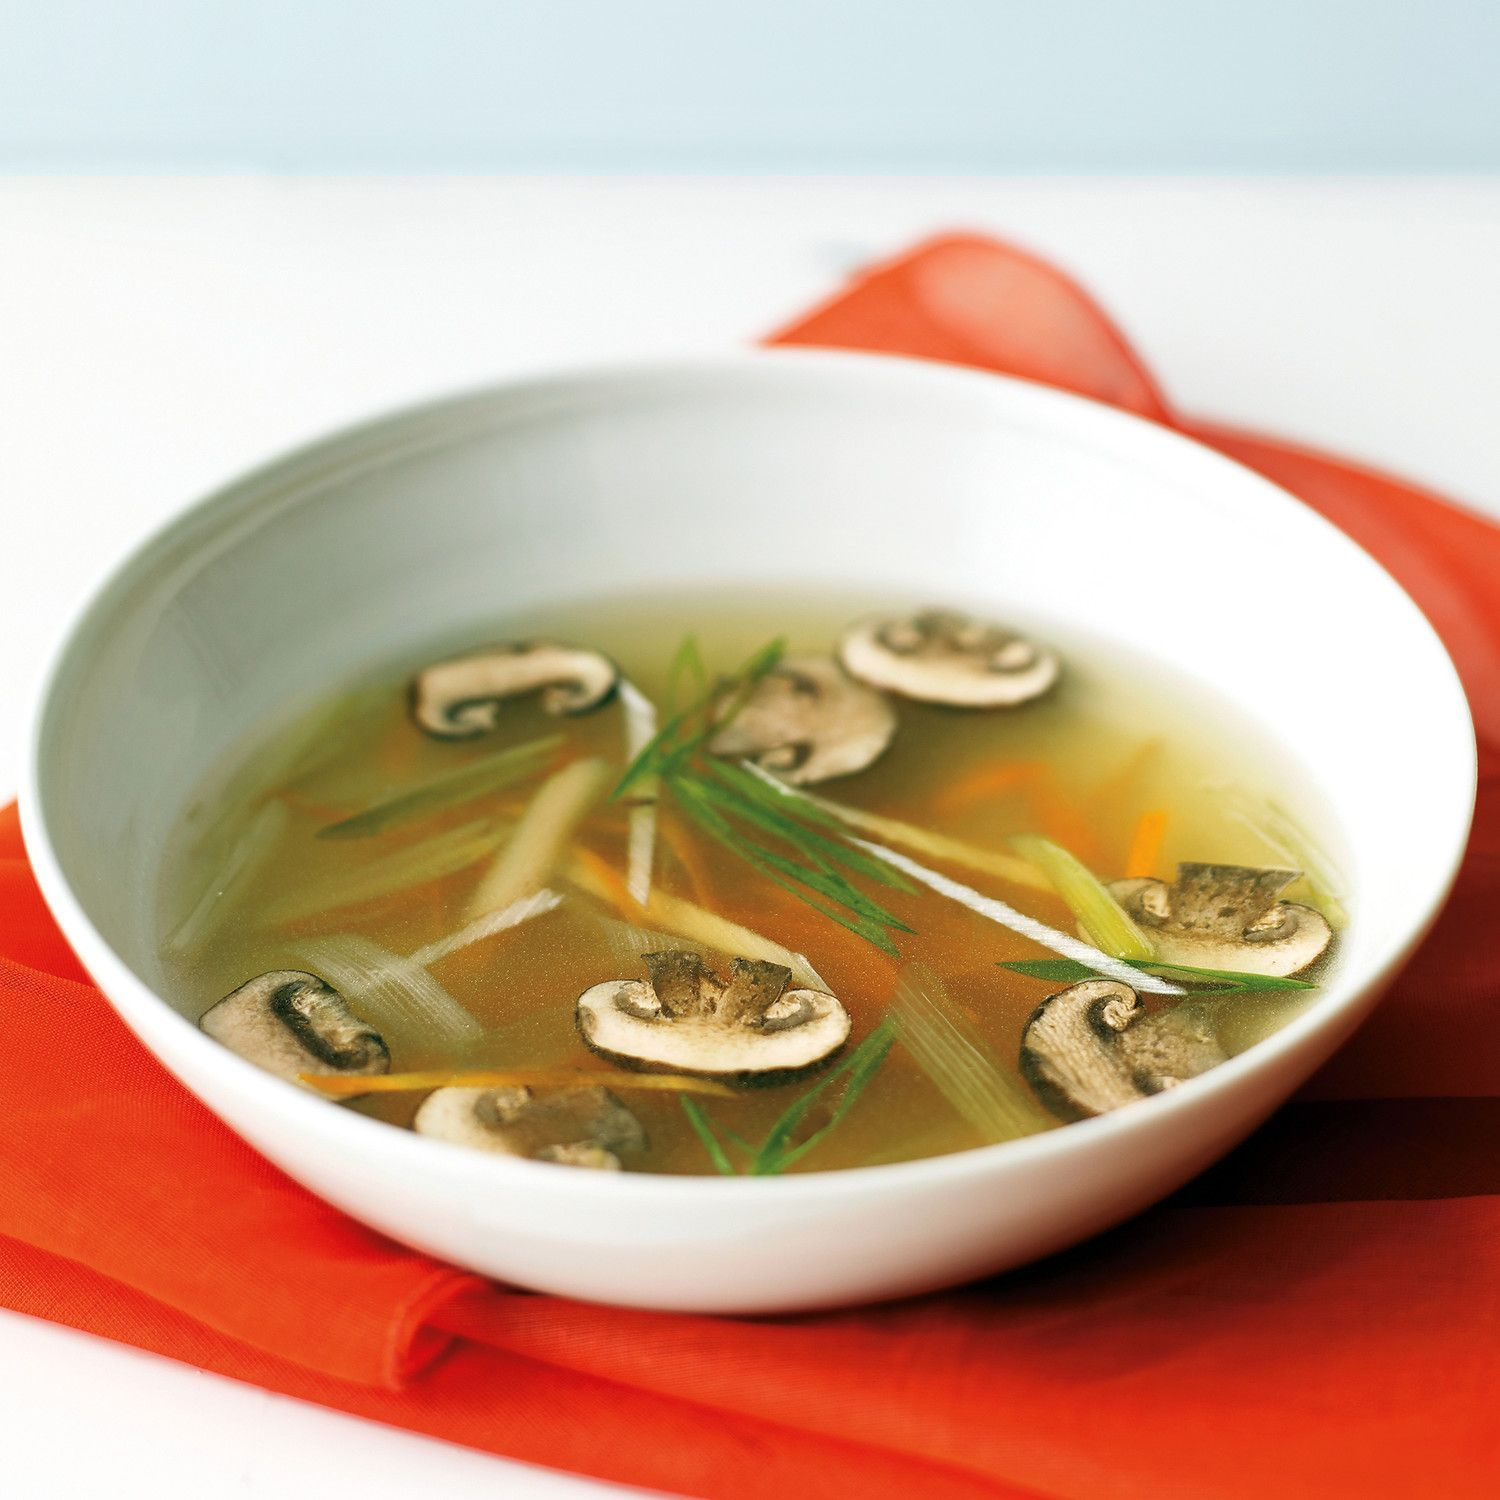 Scallion-Ginger Broth #brothfonduerecipes Enhance chicken broth with scallions, ginger, and fish sauce for plenty of low-fat flavor. #brothfonduerecipes Scallion-Ginger Broth #brothfonduerecipes Enhance chicken broth with scallions, ginger, and fish sauce for plenty of low-fat flavor. #brothfonduerecipes